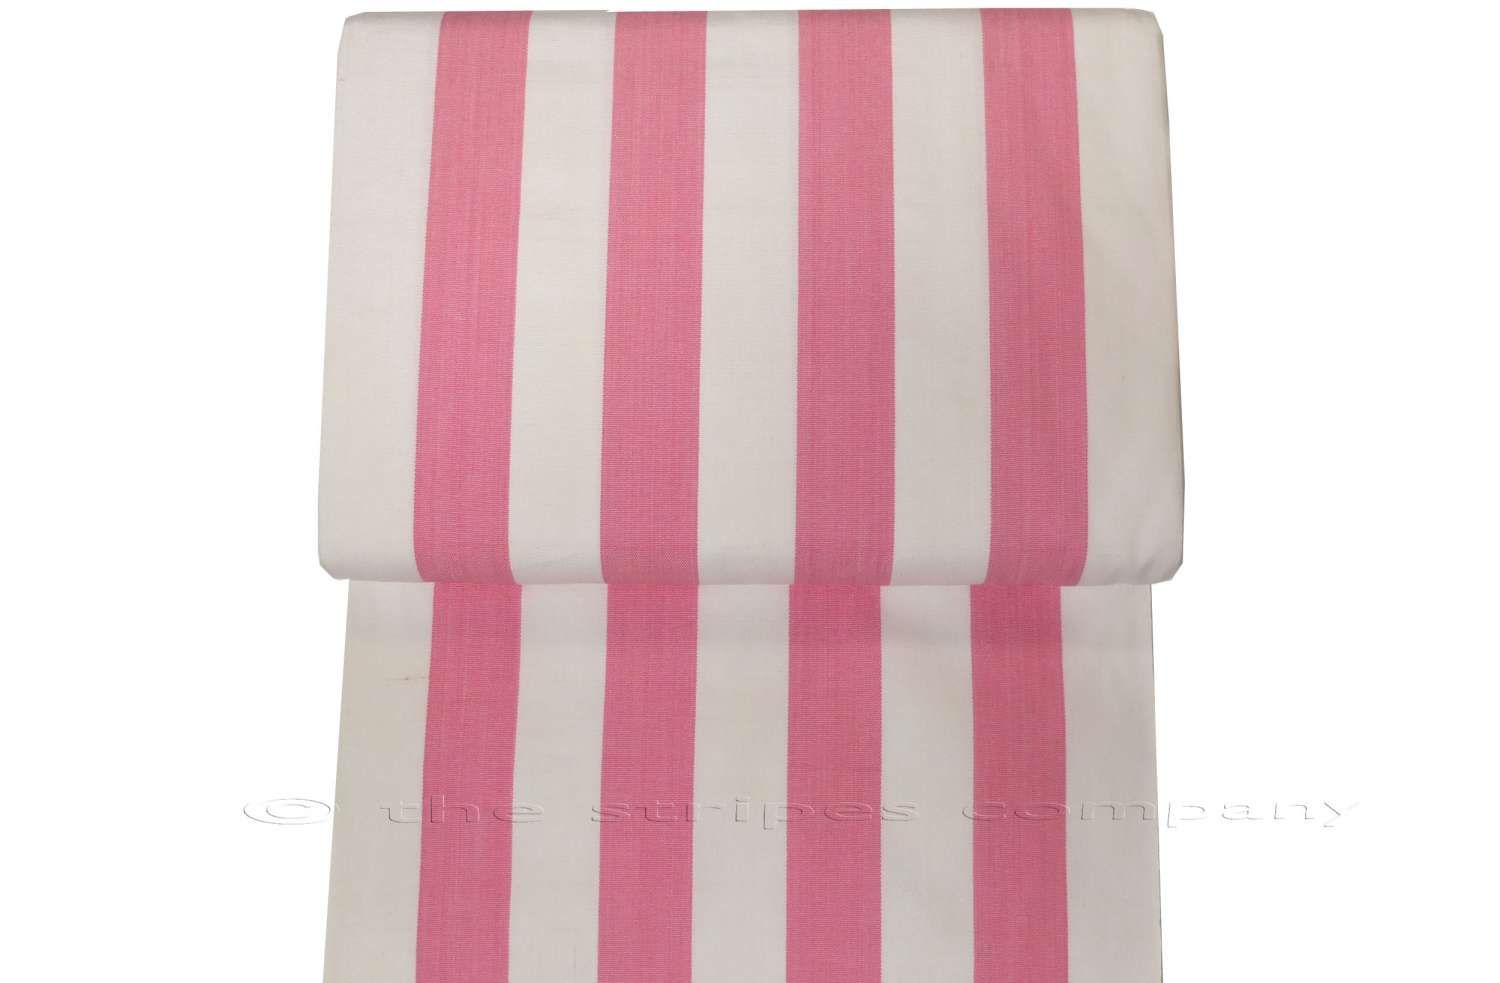 Lovely Classic Pink Stripe Deckchair Fabric For Recovering Deckchairs U0026 Directors  Chairs And Making Deckchair Slings. Pretty Deckchair Stripe Of Pink And  White UK